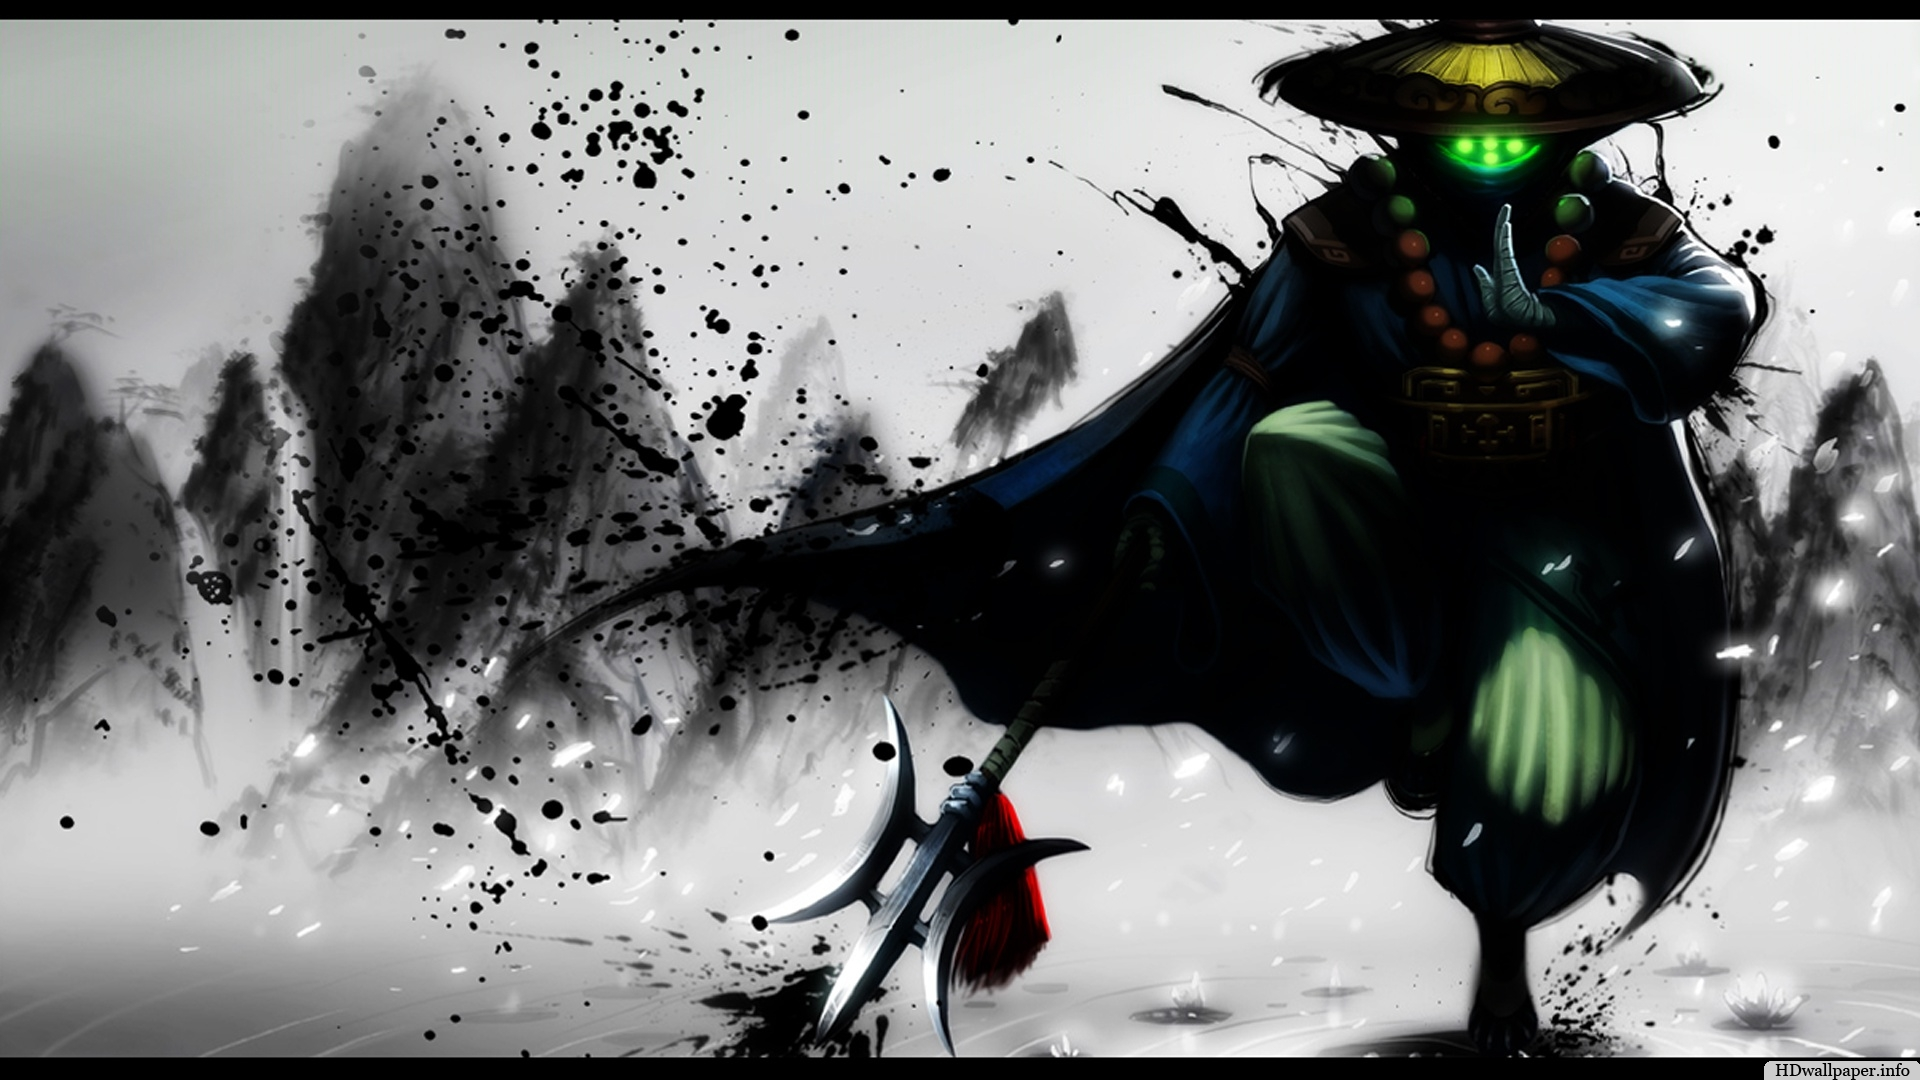 League Of Legends Wallpaper Hd 1920x1080 - http://hdwallpaper info